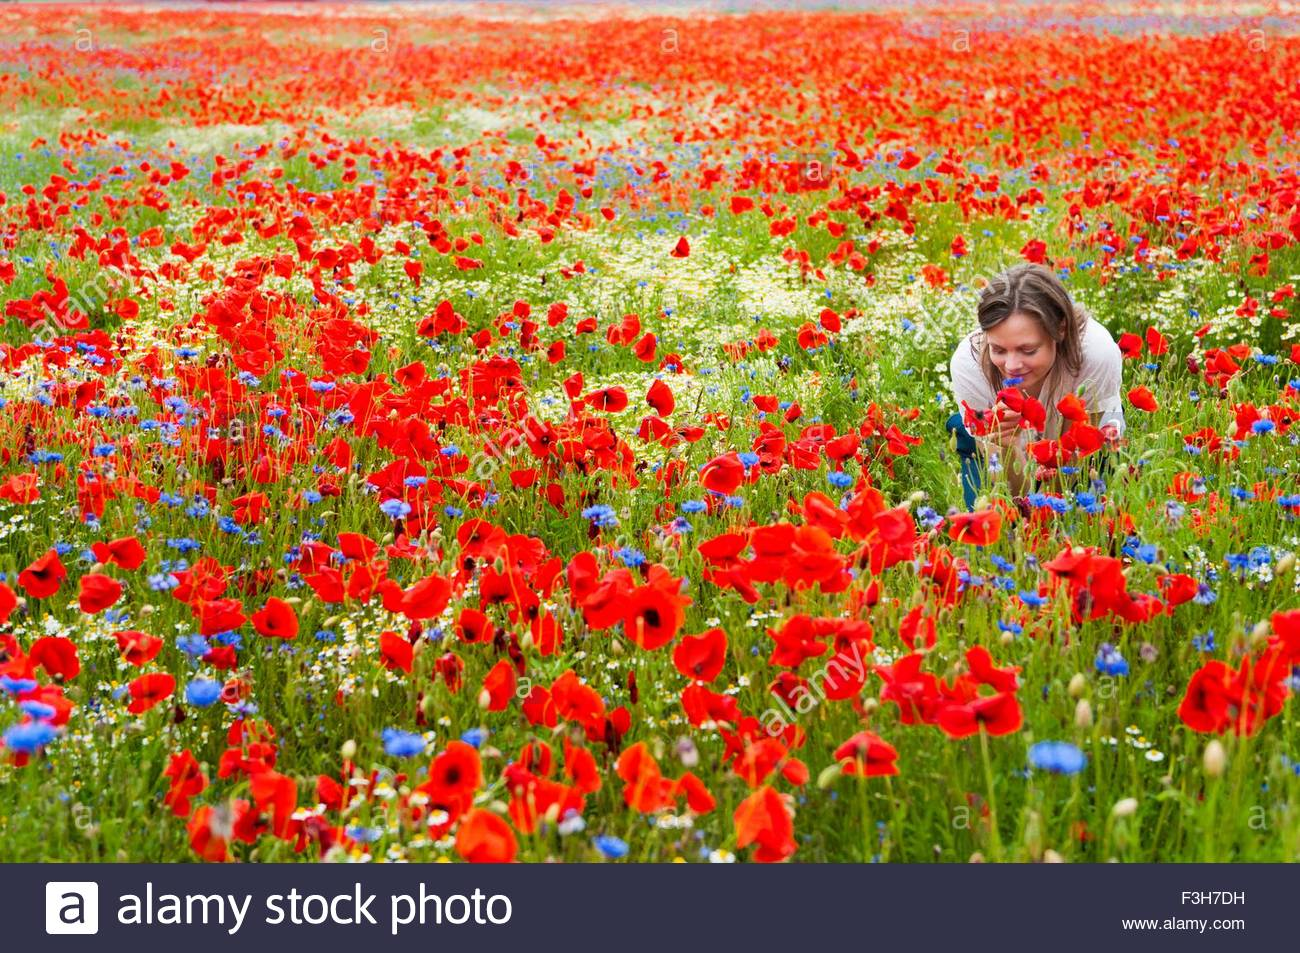 Mid adult woman in poppy field, bending to smell flowers - Stock Image